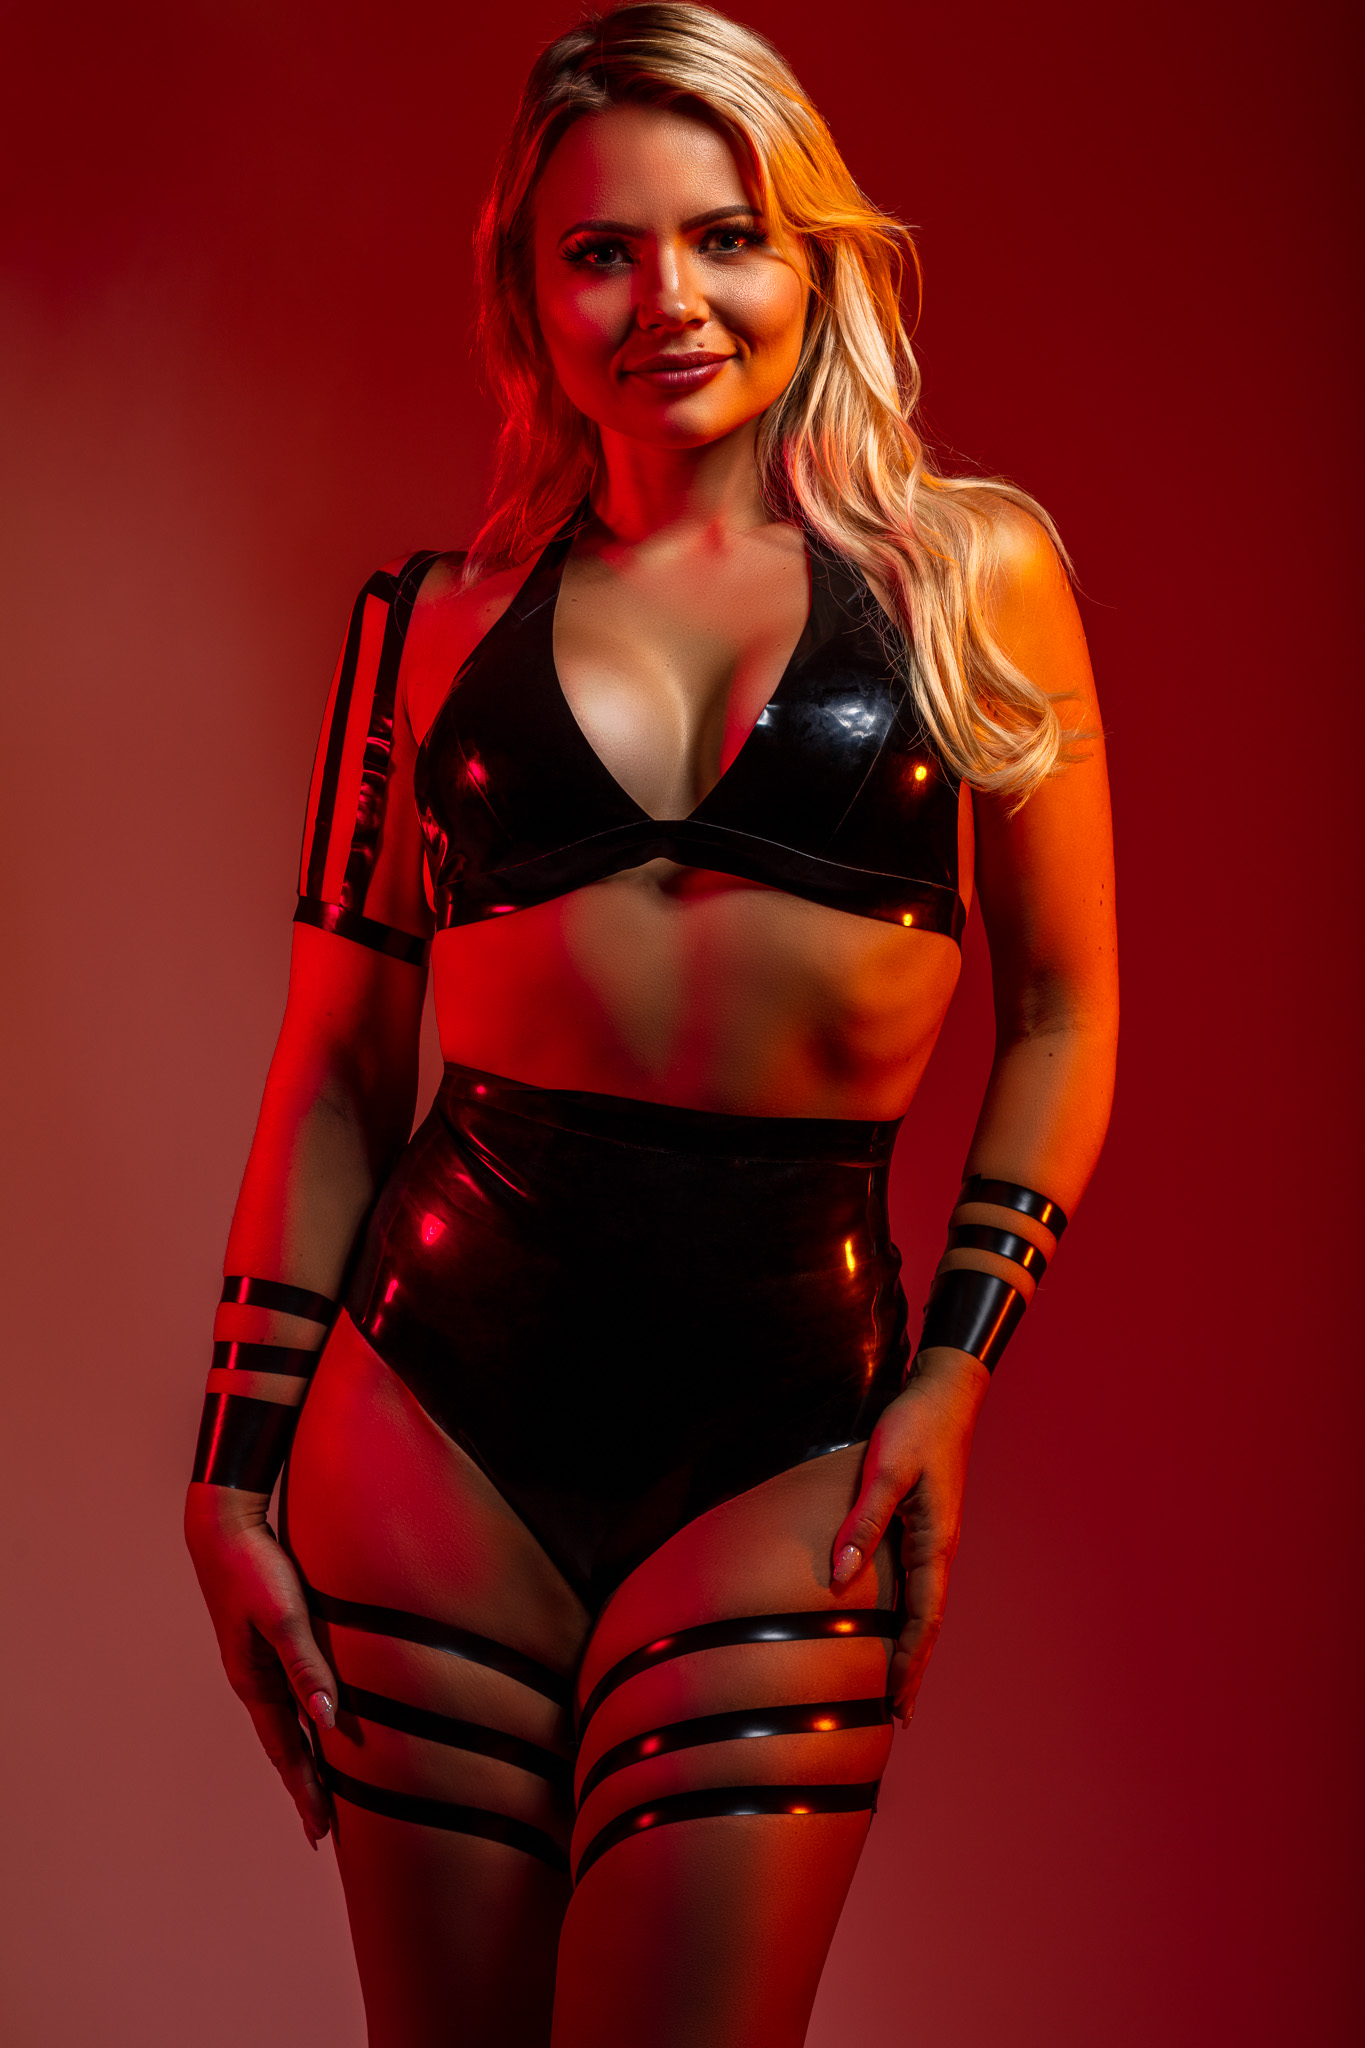 Daria in Latex by William Wilde and #blacktapeproject